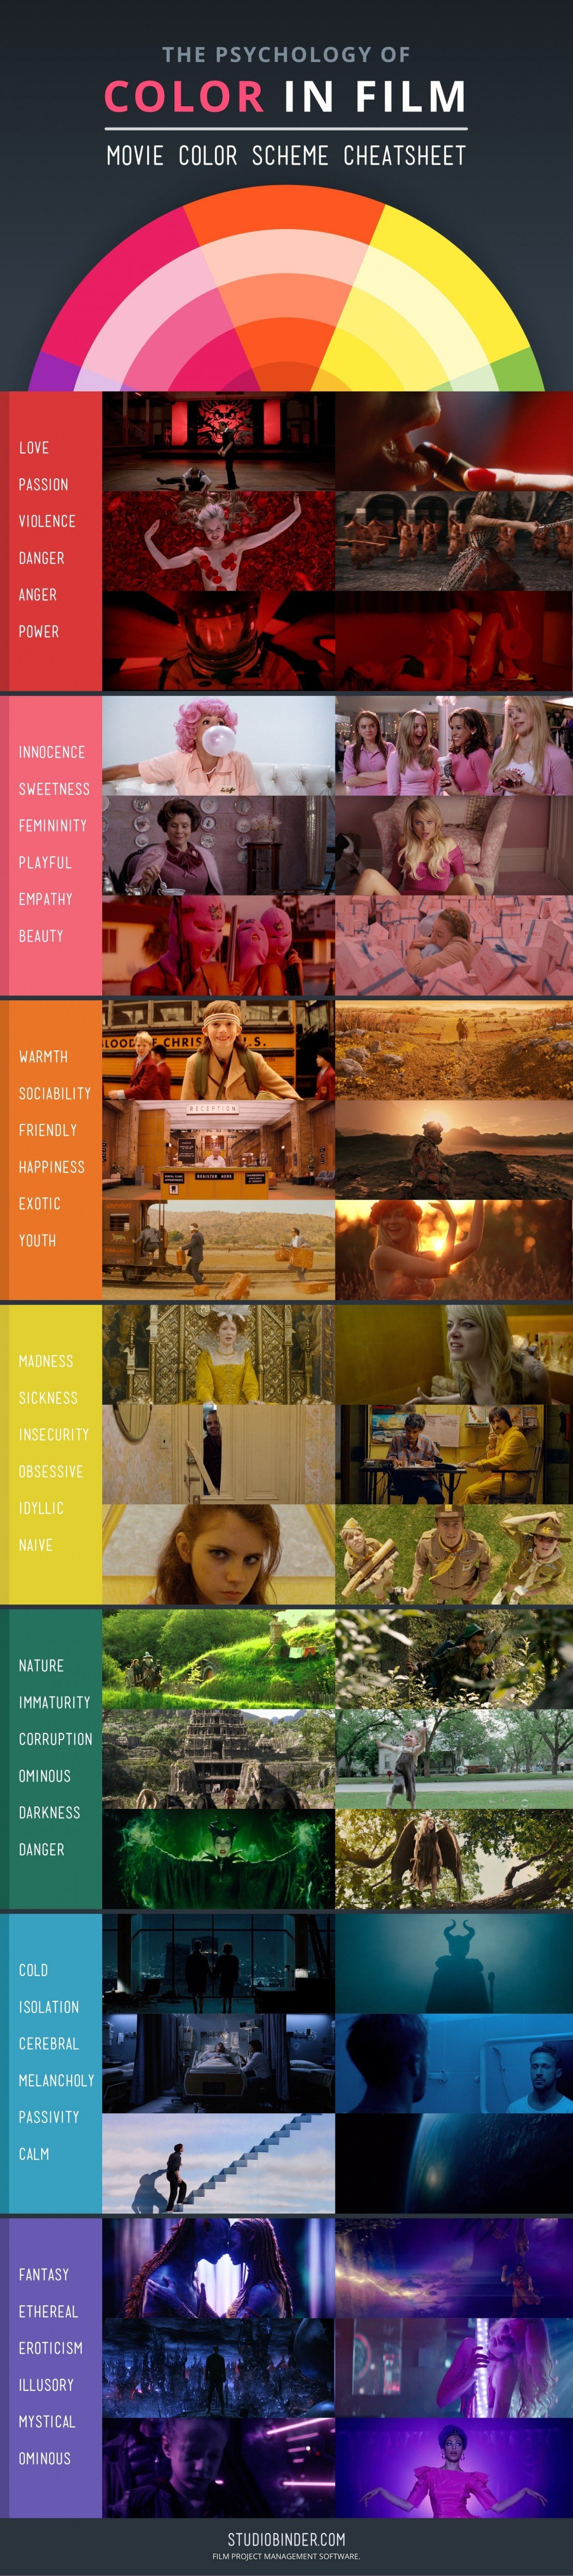 This Infographic Reveals the Connection Between Color and Emotion in Film